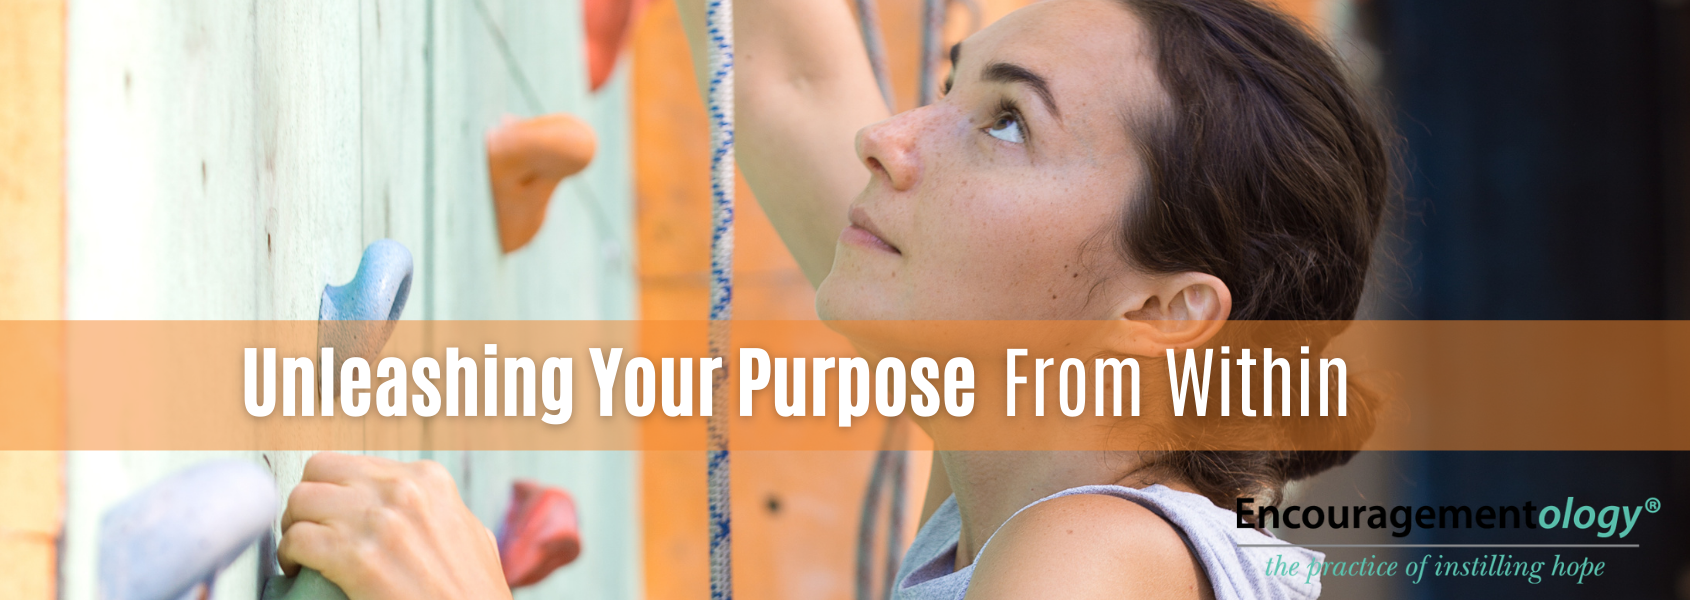 Unleashing Your Purpose From Within